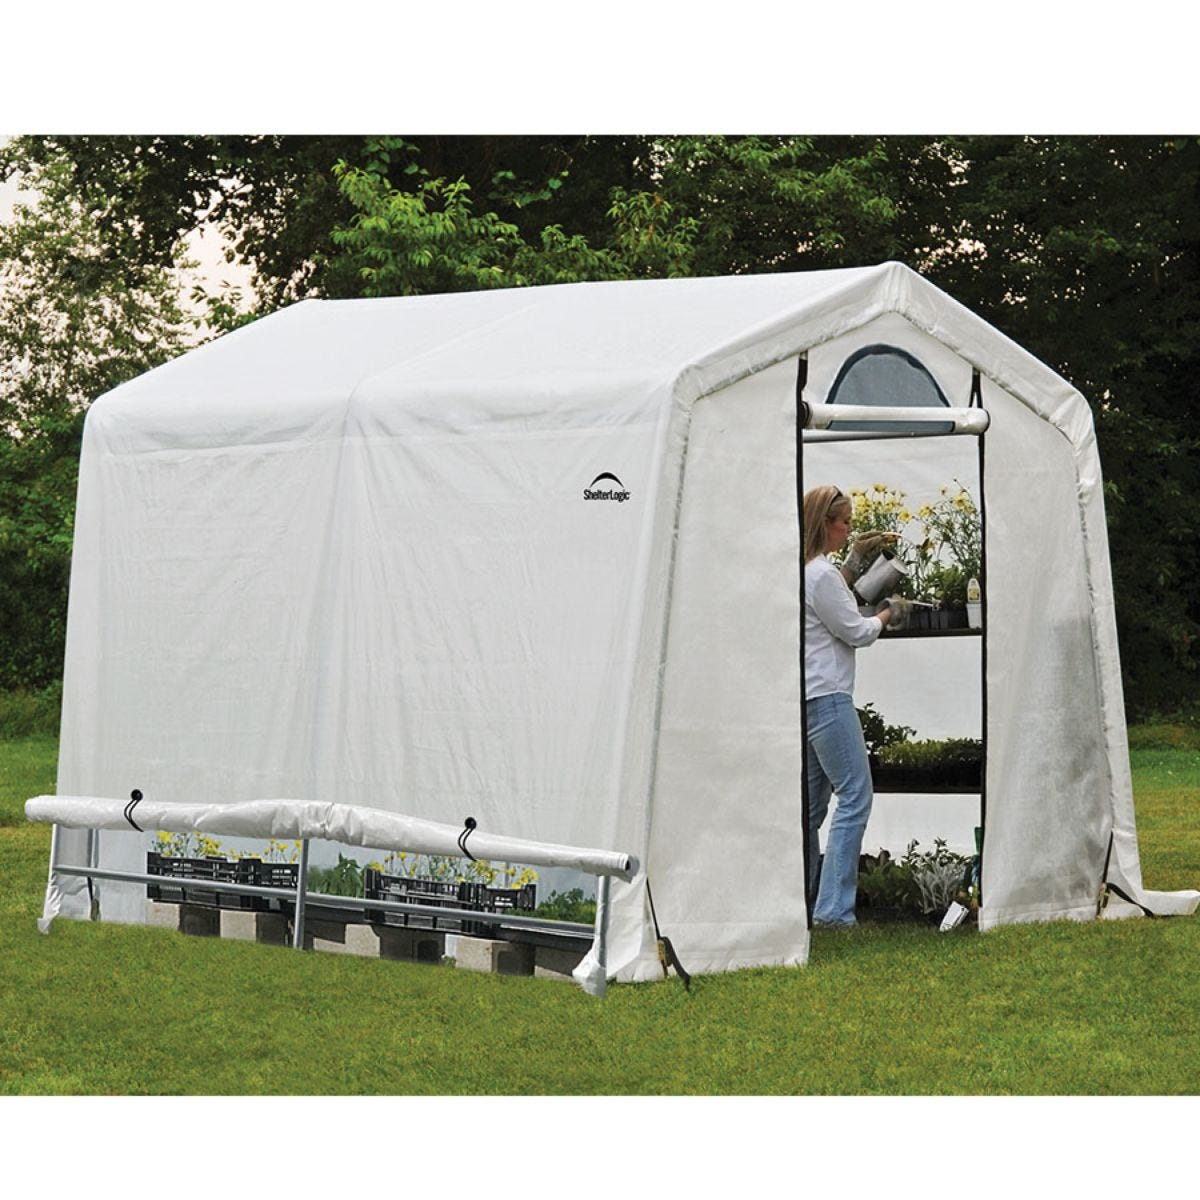 ShelterLogic 8ftx8ft Greenhouse in a Box